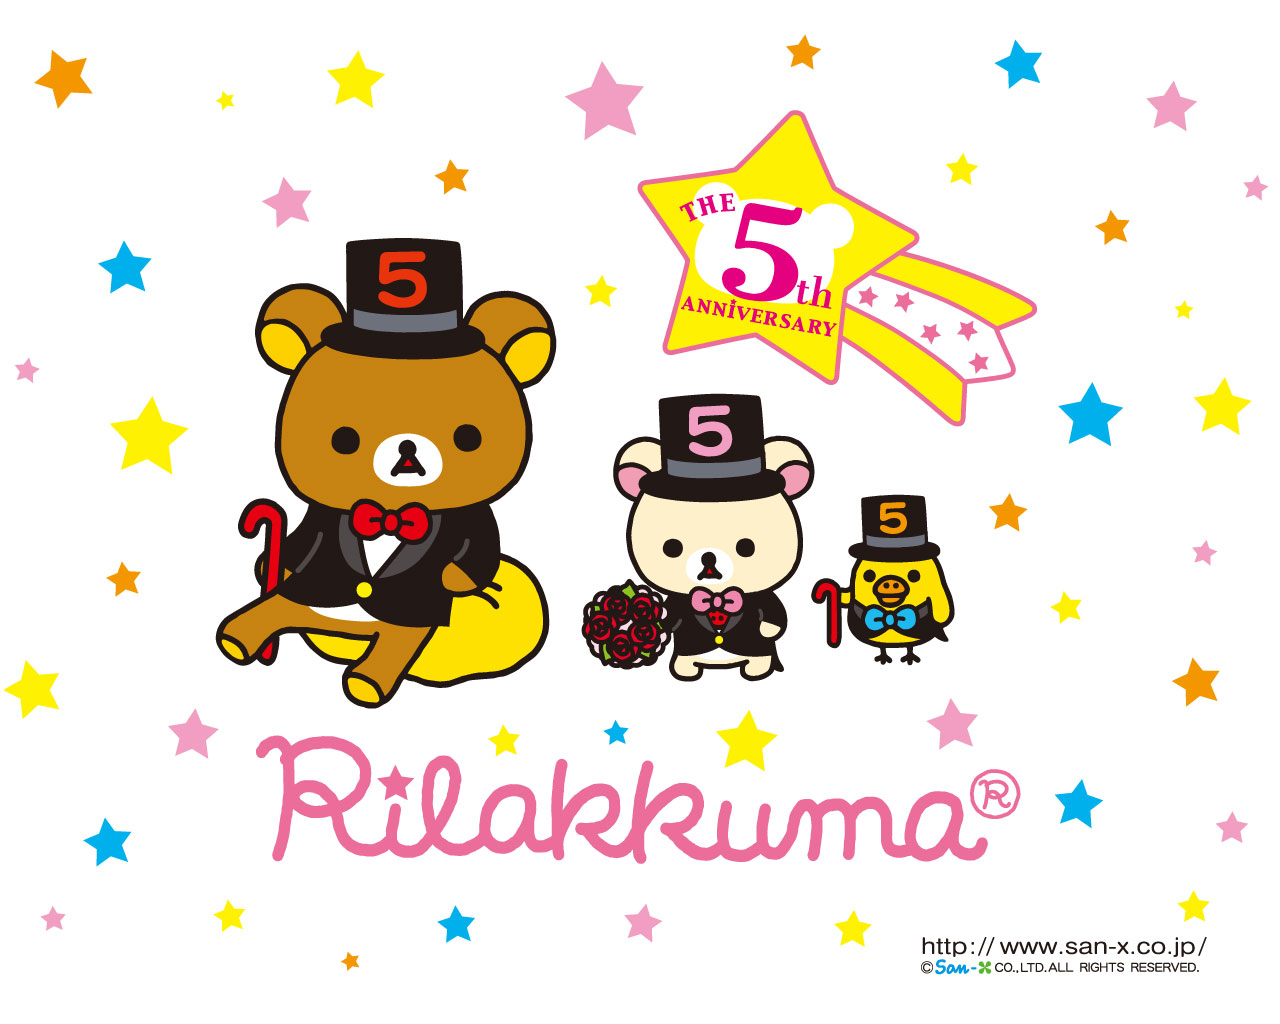 rilakkuma wallpaper january - photo #41